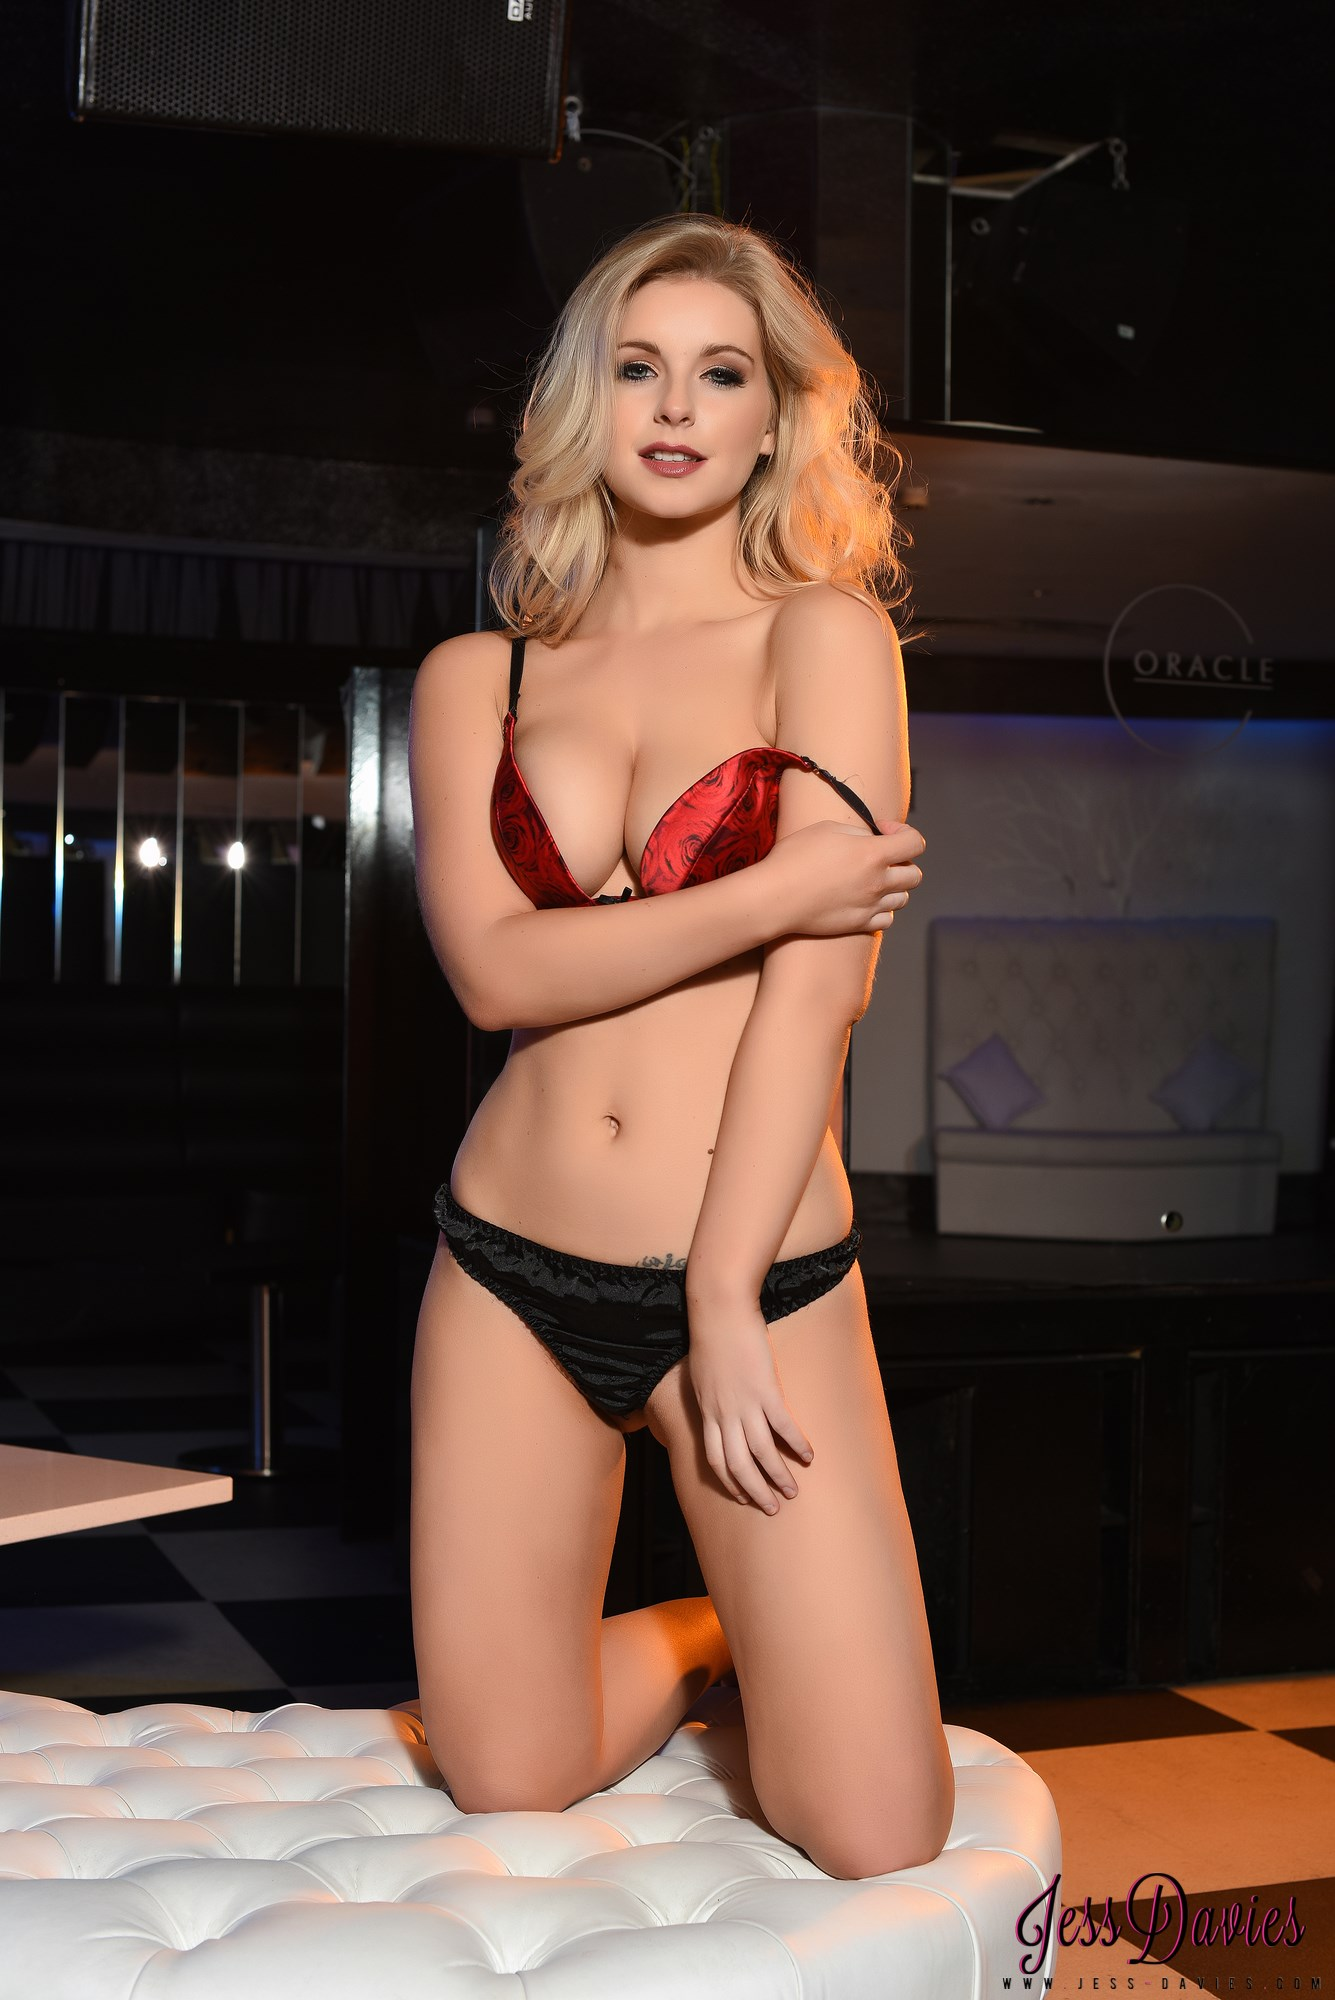 Jess Davies looking red hot in red and black lingerie